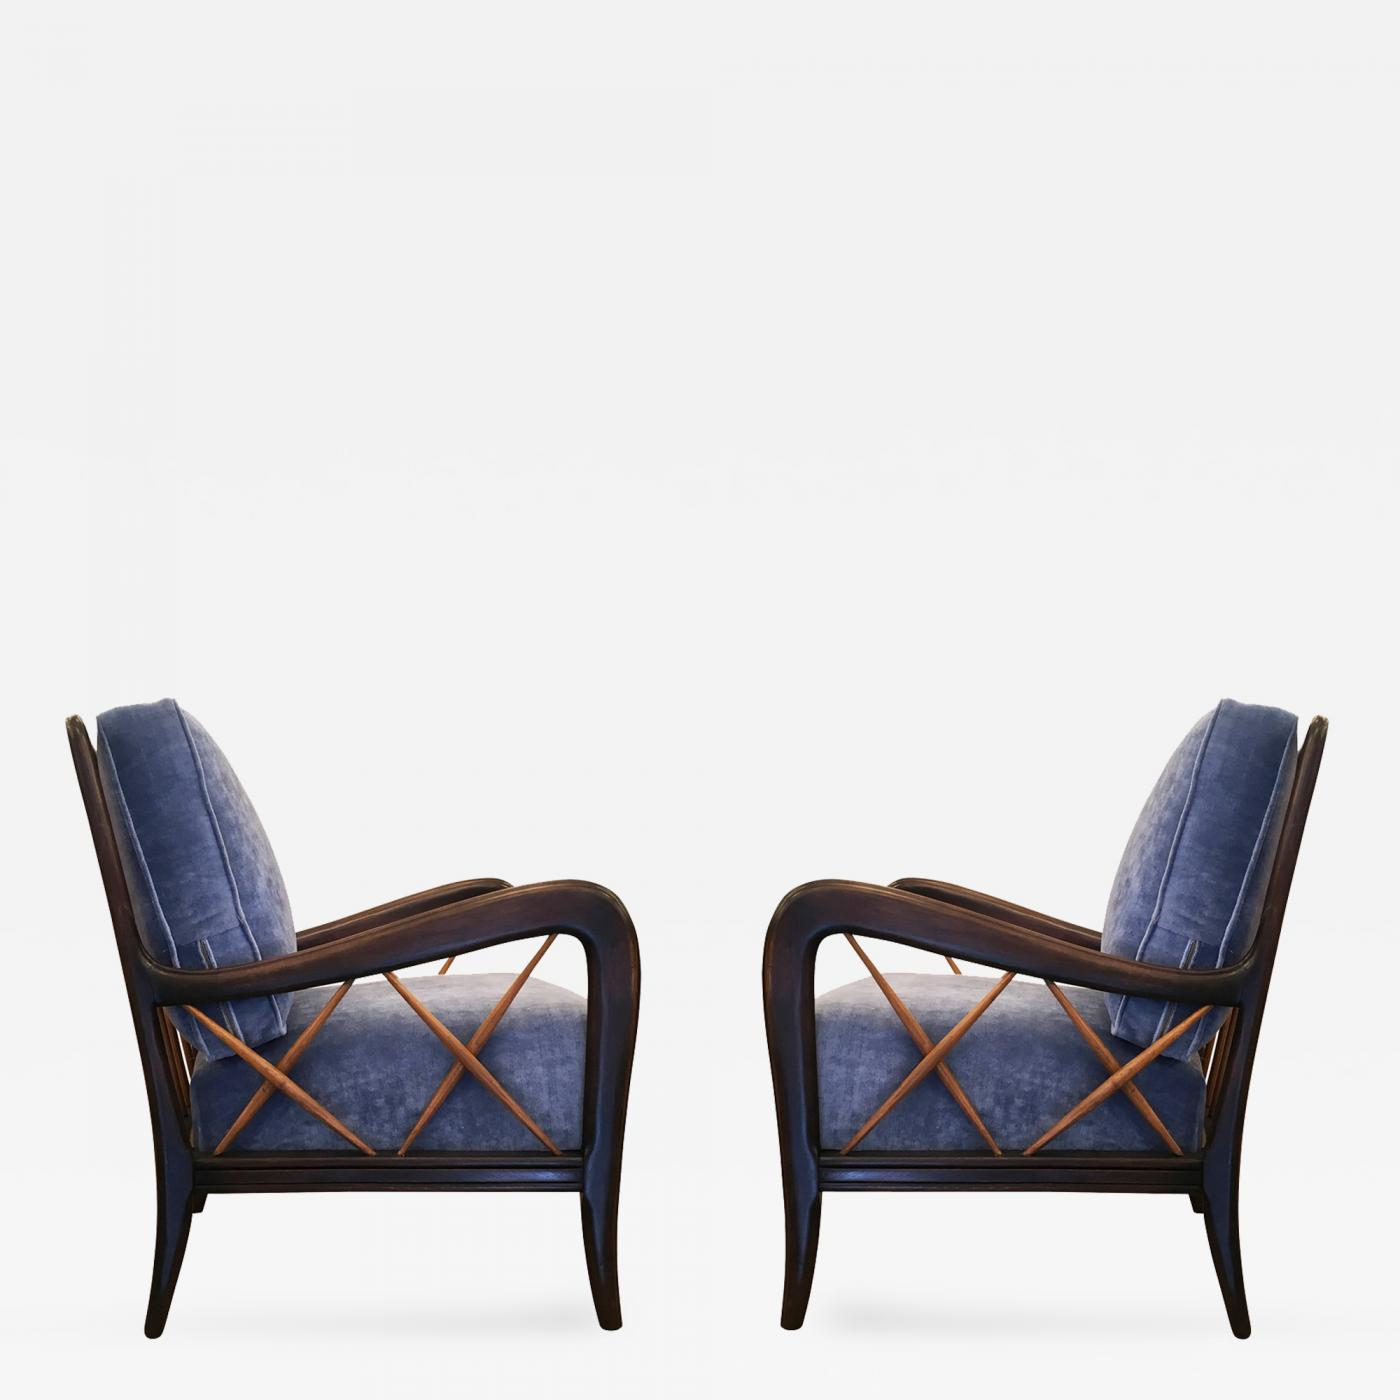 italian furniture designs. Sculptural Pair Of Armchairs, Italy Circa 1950s. Offered By Gaspare Asaro \u2013 Italian Modern. Furniture Designs S